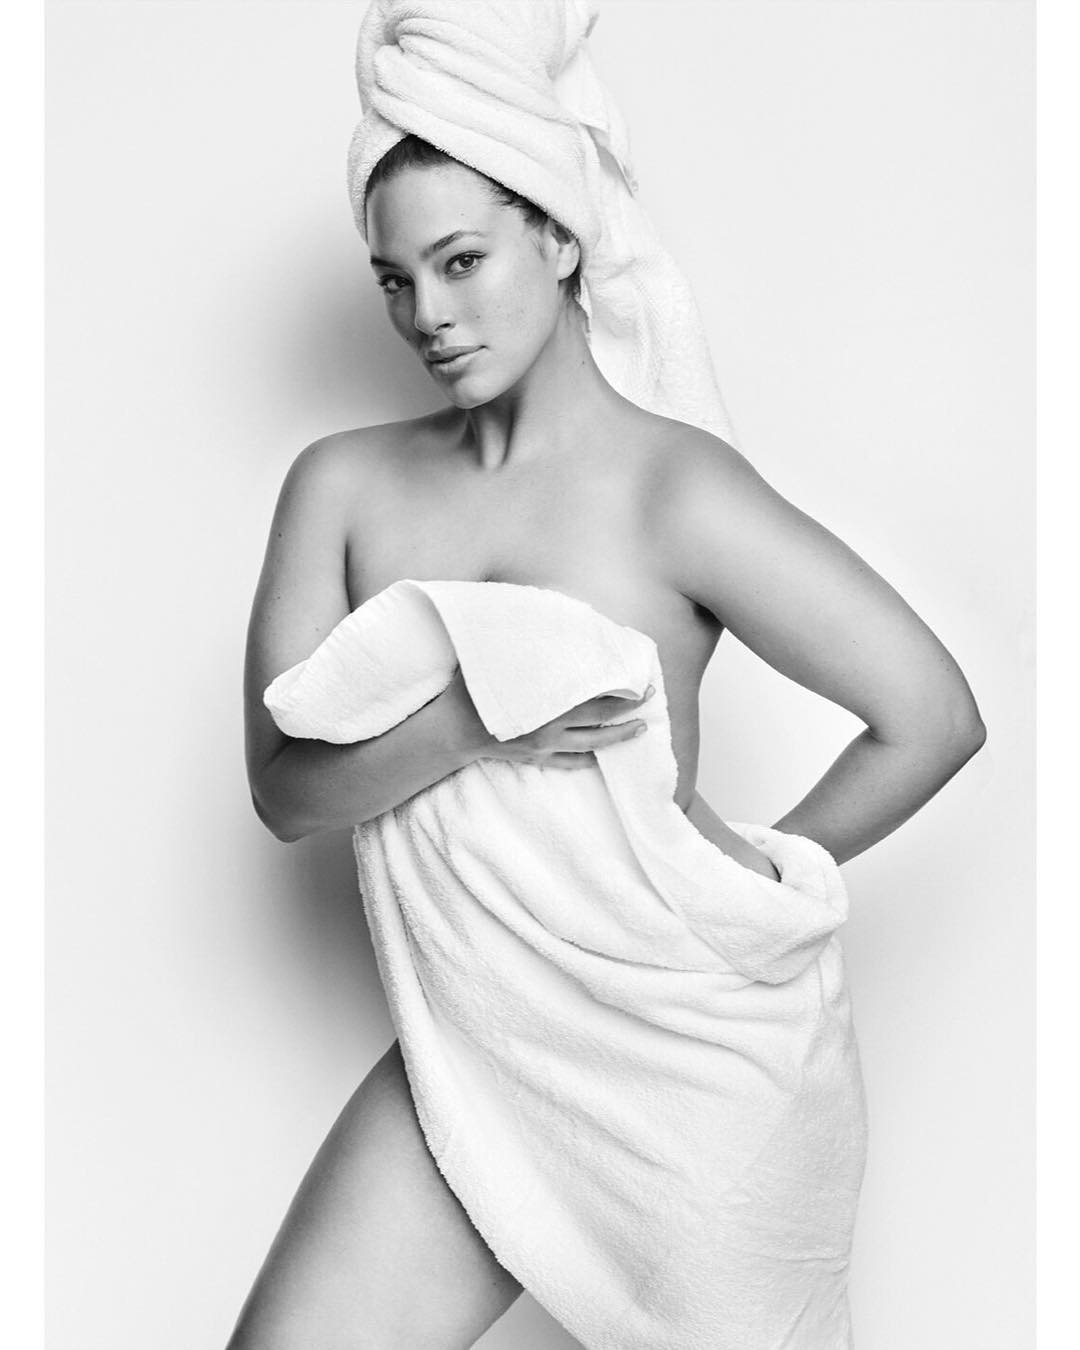 "<p>Us mere mortals aren't at our best immediately post shower. But that's not something model Ashley Graham has to concern herself about as this incredible pic collection shot by the legendary Mario Testino reveals.</p> <p>The supermodel  is the latest famous face and first-ever plus-size model to strip down for Testino's 'towel series'.</p> <p>The series is exclusive to Testino's Instagram account <a href=""https://www.instagram.com/mariotestino/"" target=""_blank"" draggable=""false"">@mariotestino,</a> and in it A-list models, musicians and other beautiful people pose for the Peruvian photographer in nothing but a pristine white bathrobe.</p> <p>Graham's shot sees her wearing nothing but a towel wrapped around her curves and another holding her hair back.</p> <p>She joins Gisele Bundchen, Kendall Jenner, Blake Lively and other high-profile names who have bared all for the series that was started by Testino in 2013. </p> <p>Kate Moss was the first to appear. And Testino isn't about to reveal who is coming next.</p> <p>""I choose very carefully who I photograph for it—it is only my point of view, no one else has a say in it,"" Testino Told <em><a href=""https://www.vogue.com/article/mario-testino-towel-series"" target=""_blank"" draggable=""false"">US Vogue.</a></em></p> <p>""You can do anything you want—wear it however you want. I have always treasured this kind of freedom: it's rare.""</p> <p>Click through to see some of our favourite shots from Mario Testino's Towel Series. </p>"